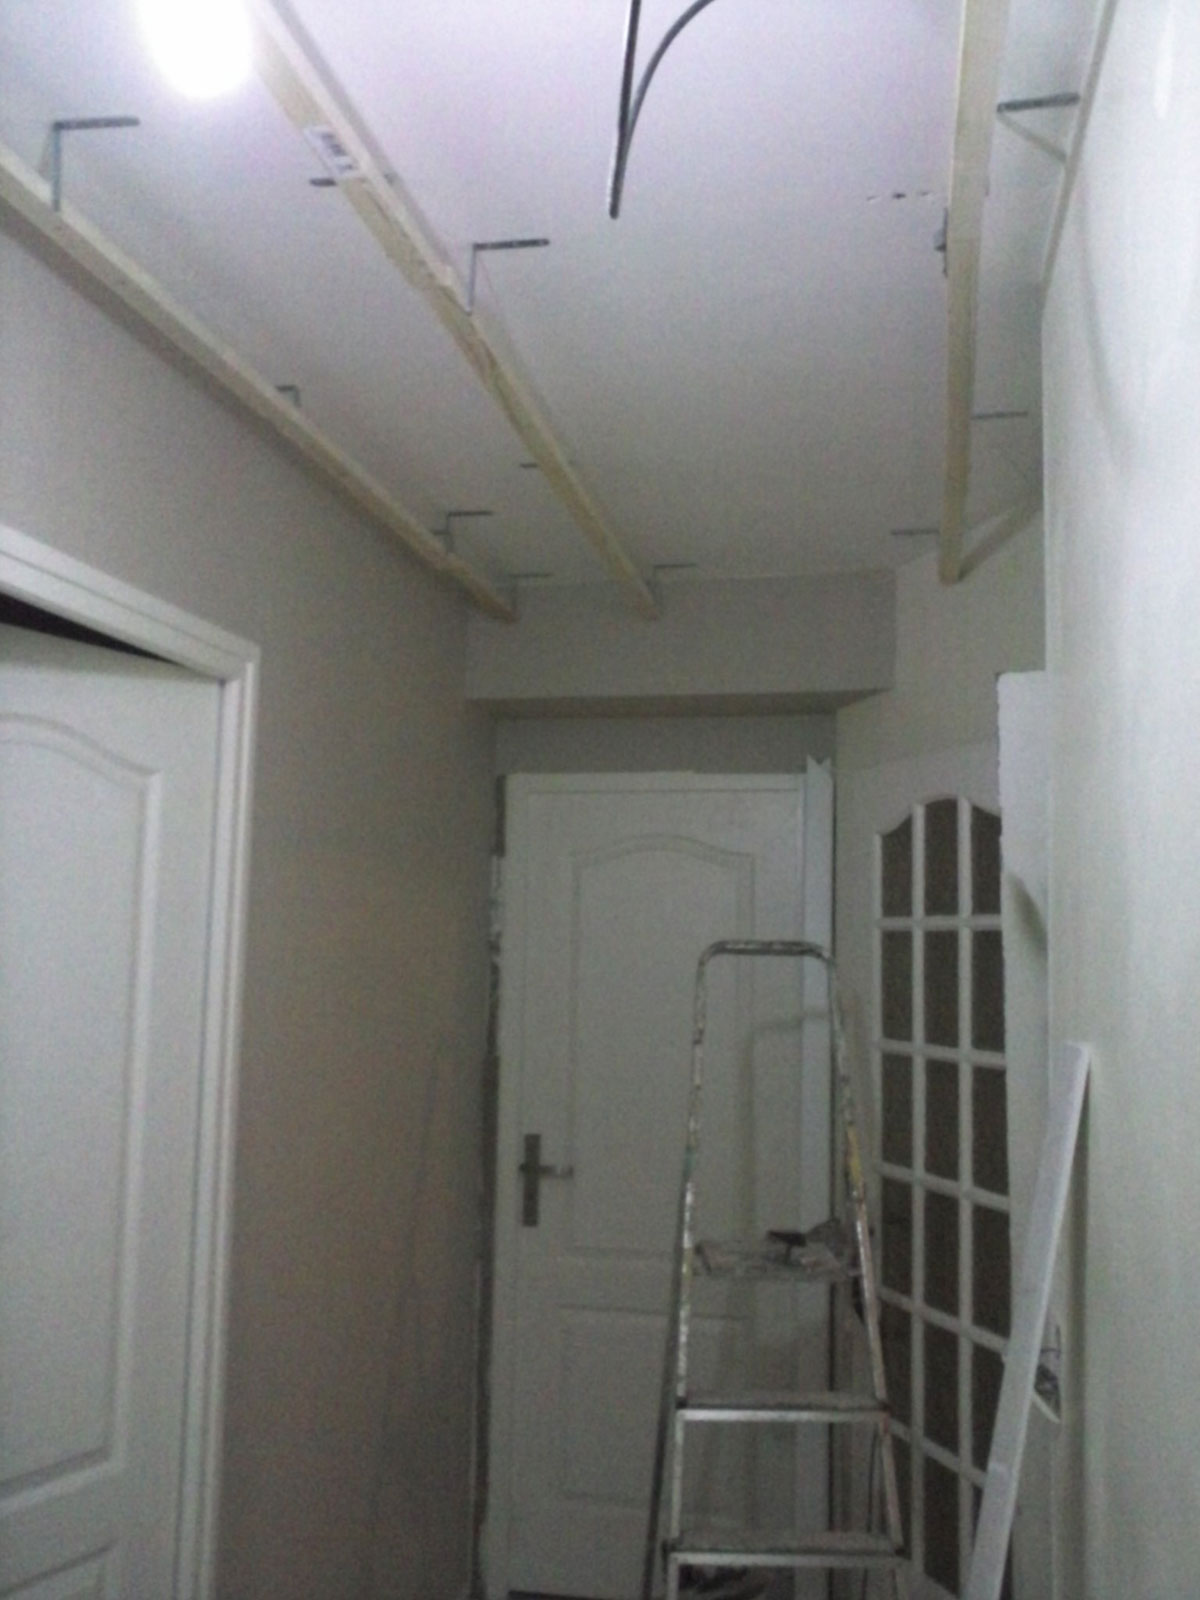 R novation de ma maison transformation d 39 un couloir for Peindre une maison